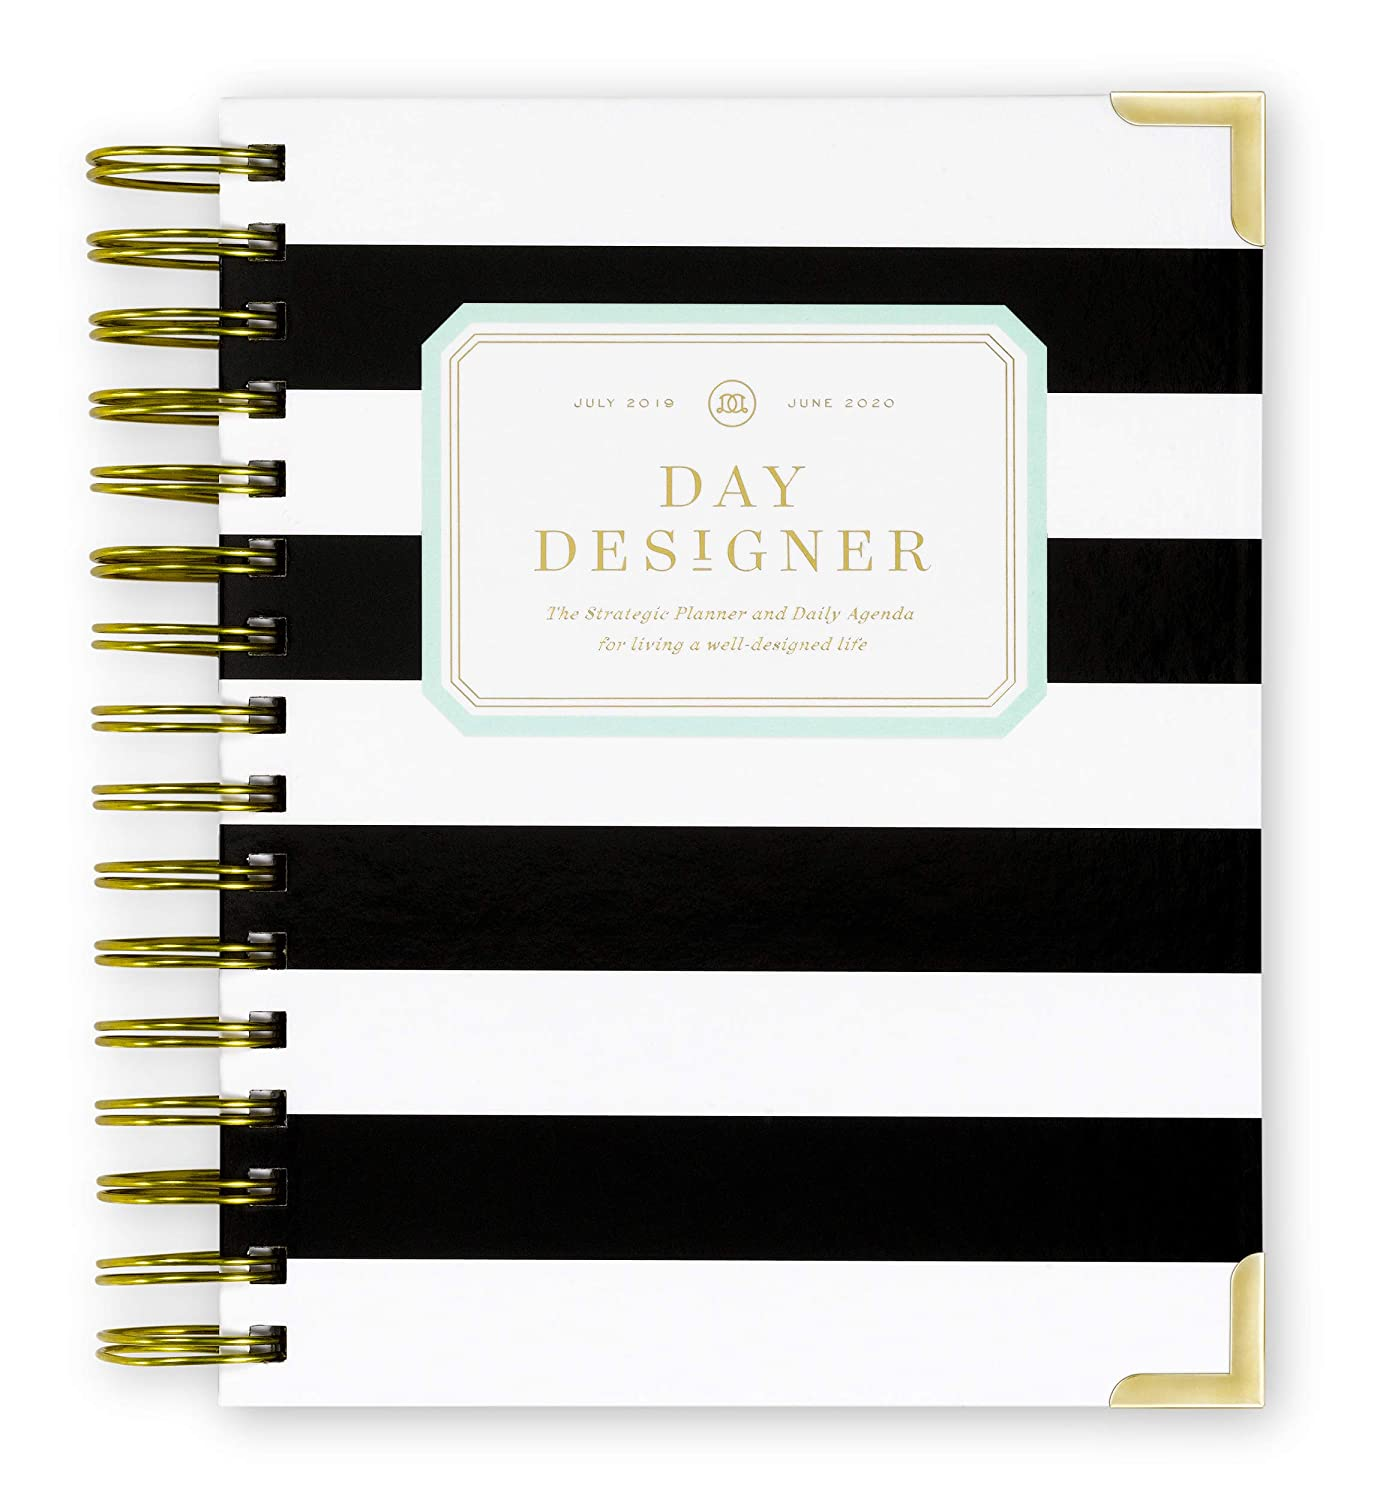 Amazon.com : Day Designer 2019-2020 Mini Daily Life Planner ...